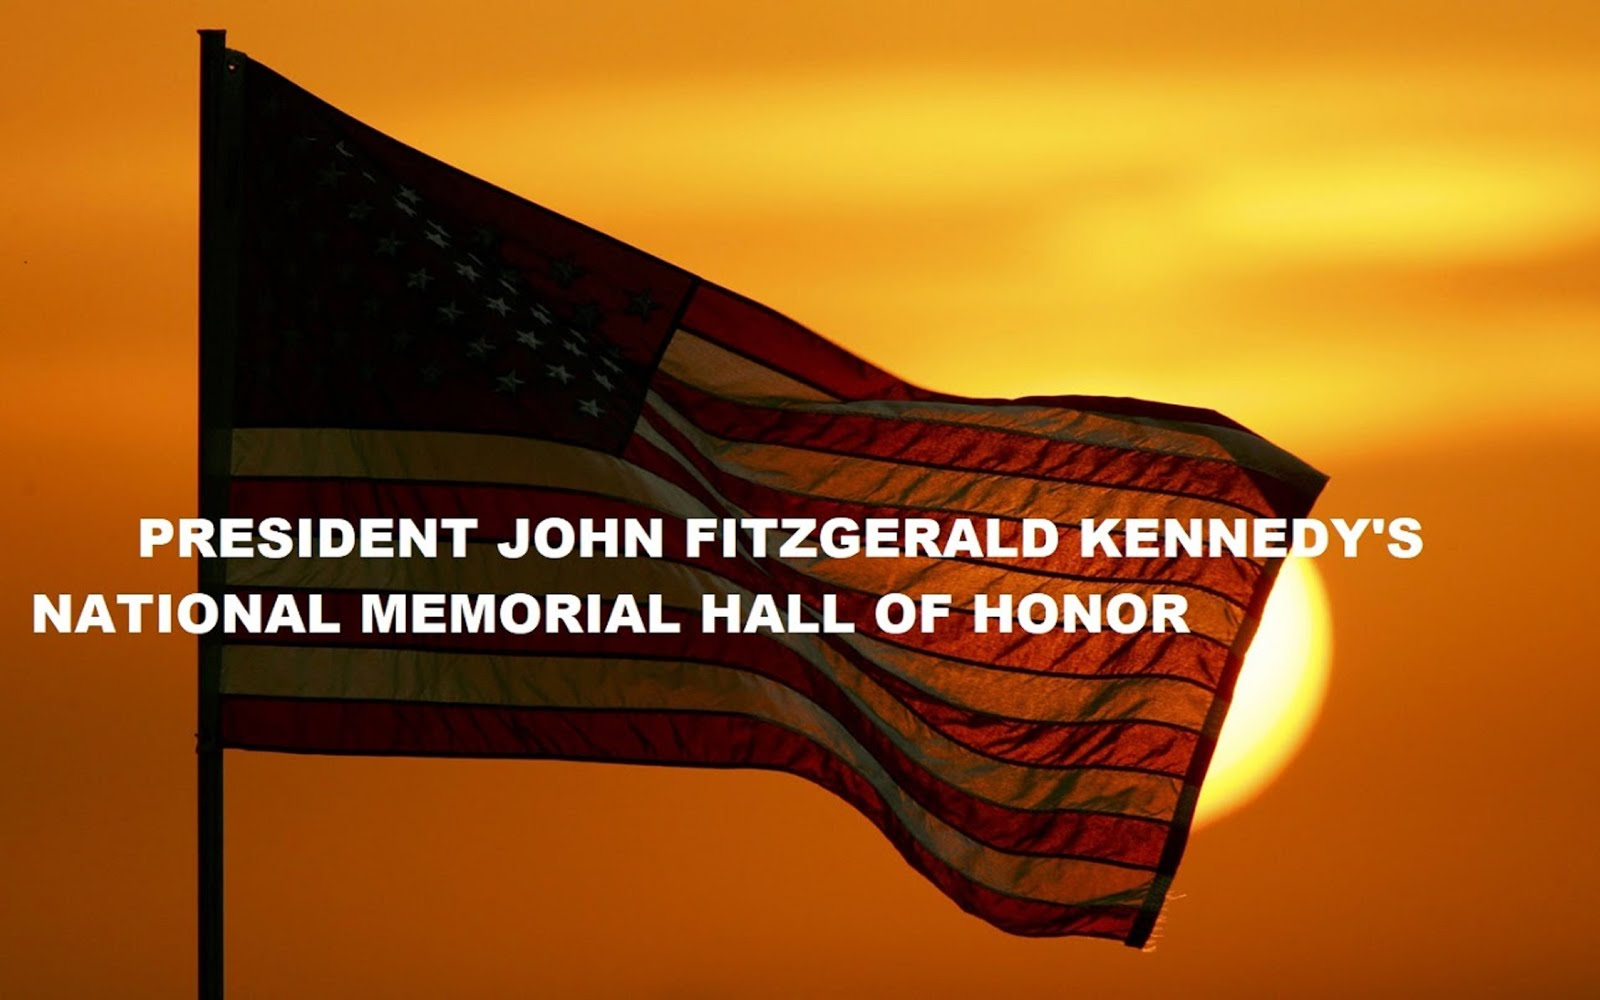 PRESIDENT JOHN FITZGERALD KENNEDY'S NATIONAL HALL OF HONOR